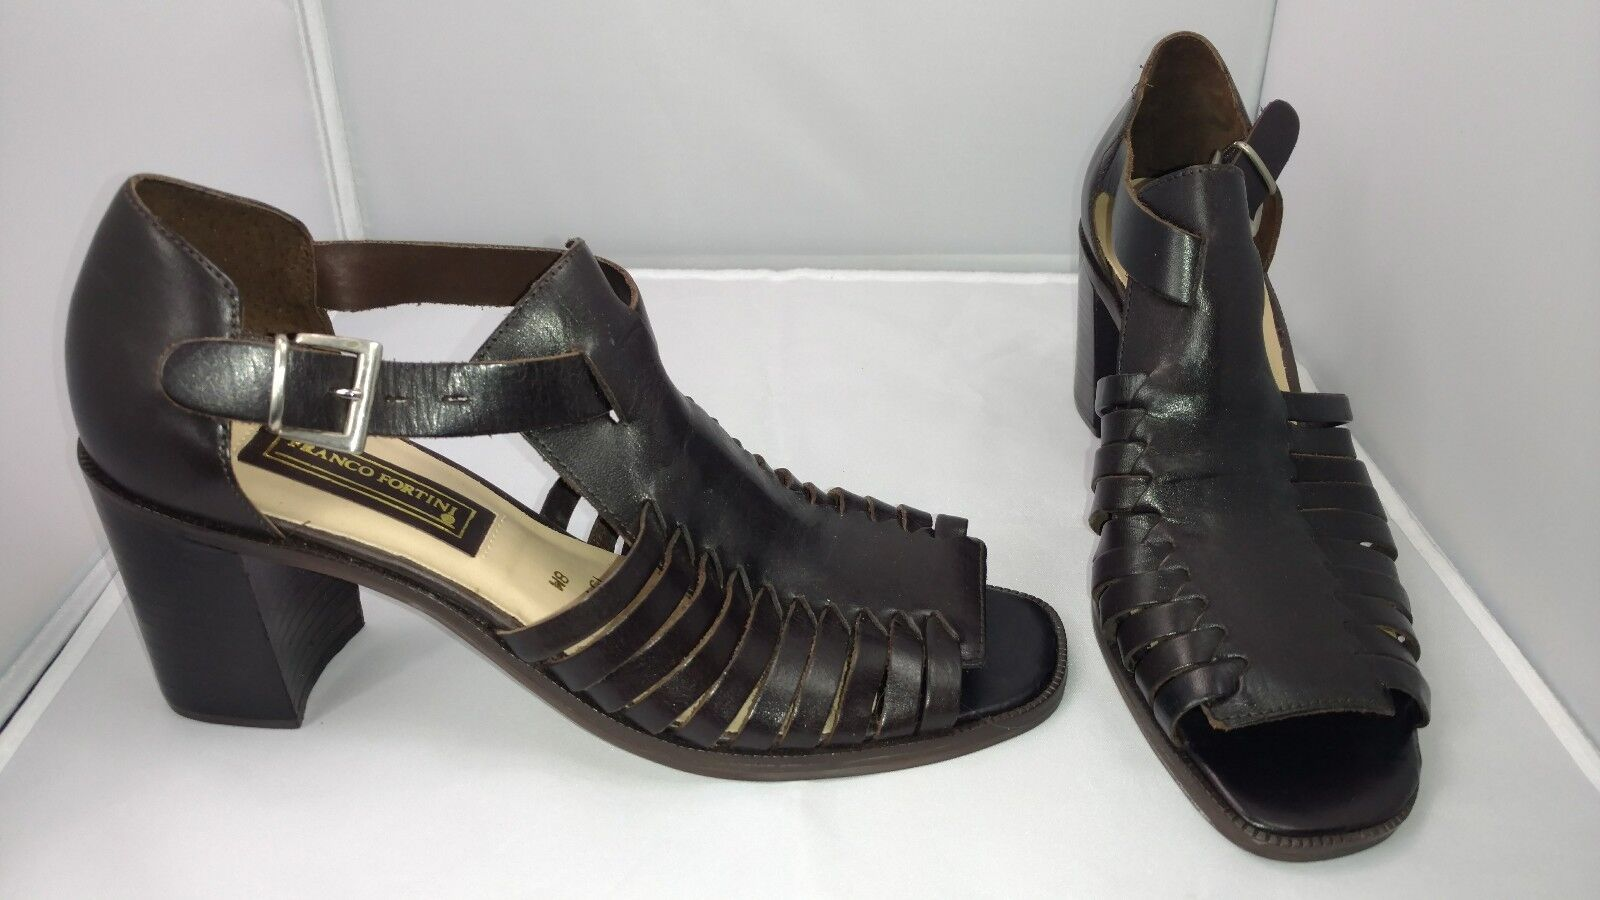 Designer Franco Fortini Fancy Chunky Heel Brown Leather Sandals Womens 8M shoes